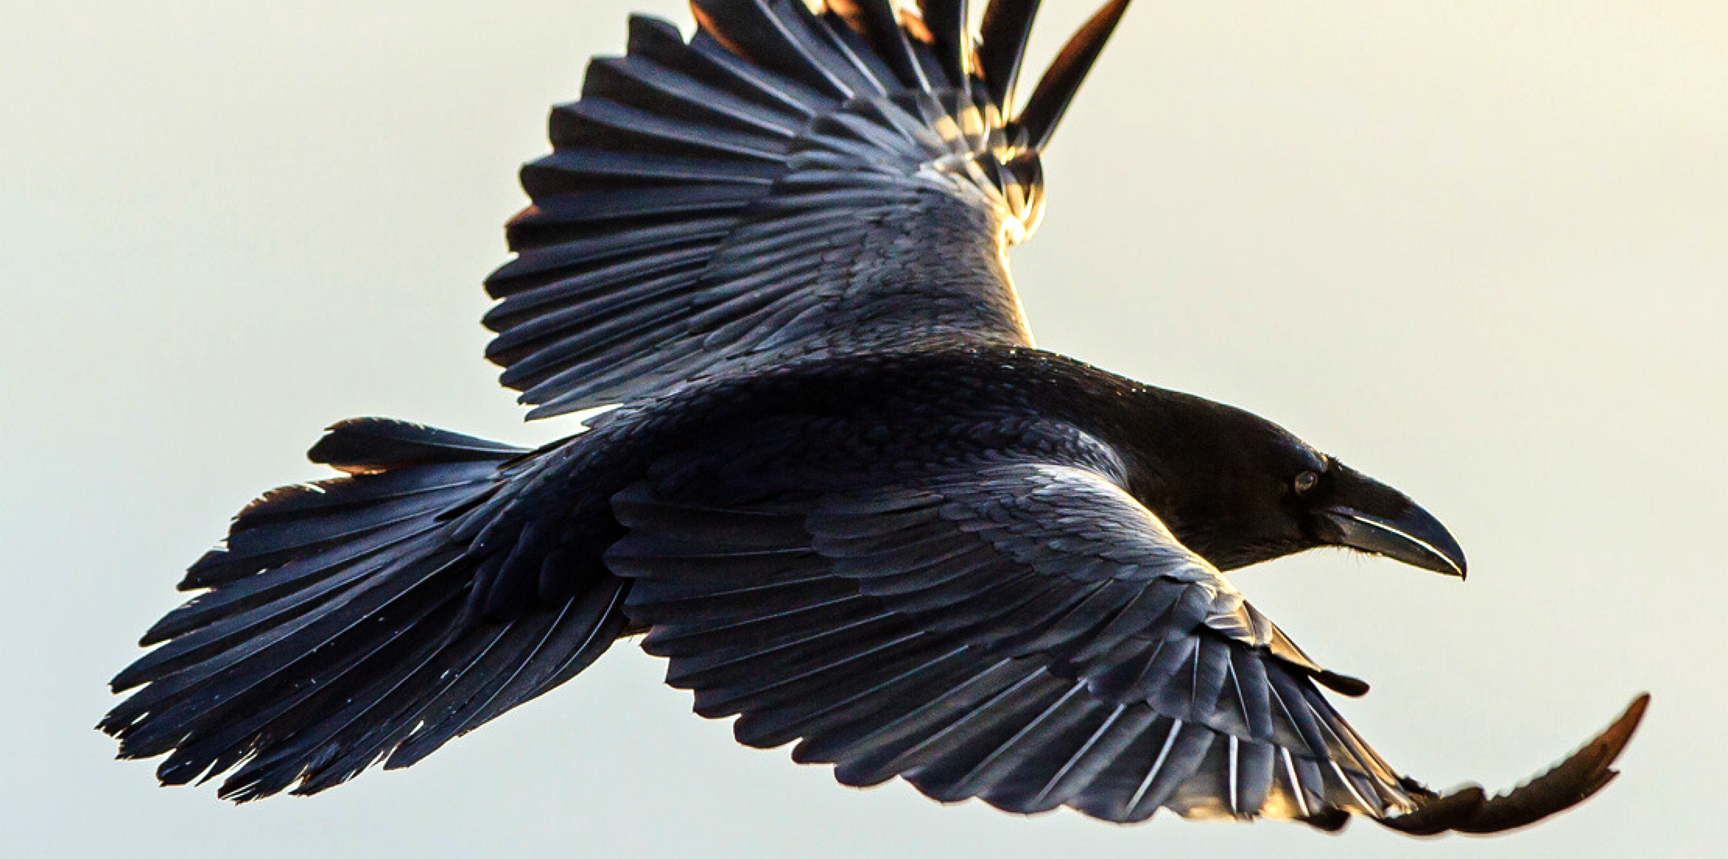 even as my friend lay dying, the ravens feed their young…